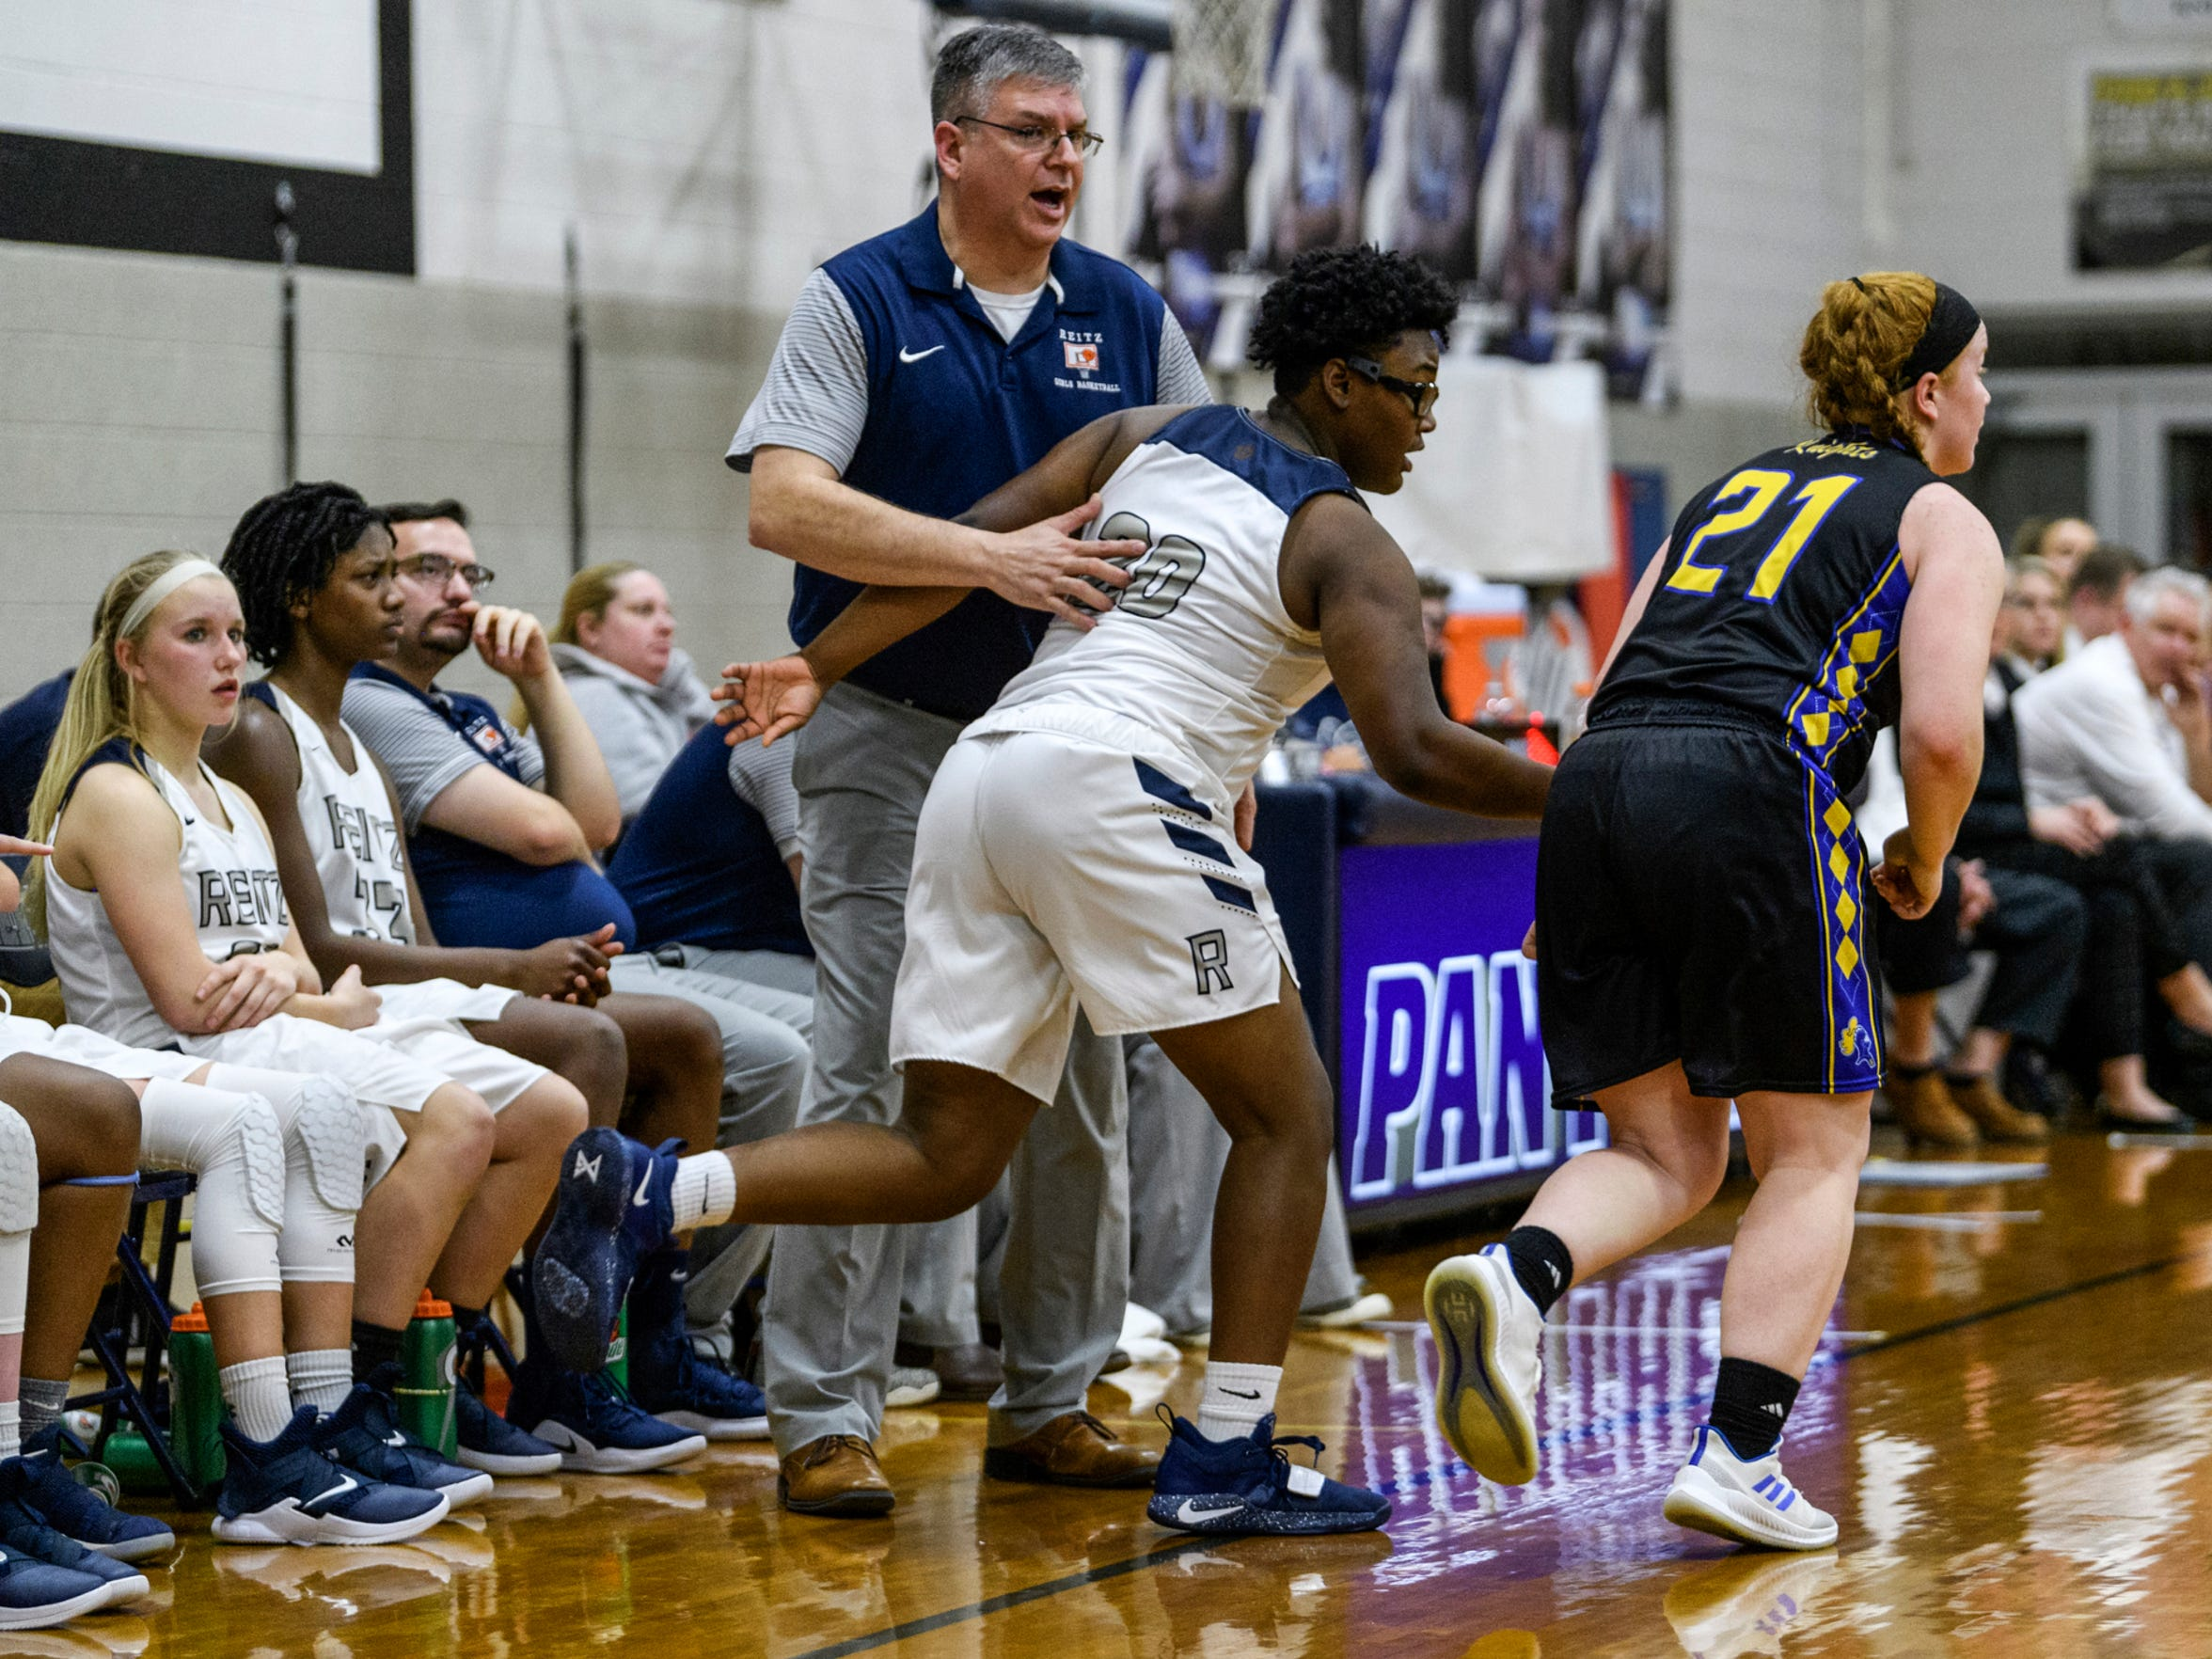 Reitz Head Coach Gary Loveless guides Reitz's Kyla Terry (30) back onto the court as their team takes on the Castle Knights at F.J. Reitz High School in Evansville, Ind., Thursday, Jan. 3, 2019. The Panthers were defeated by the Knights, 51-17.